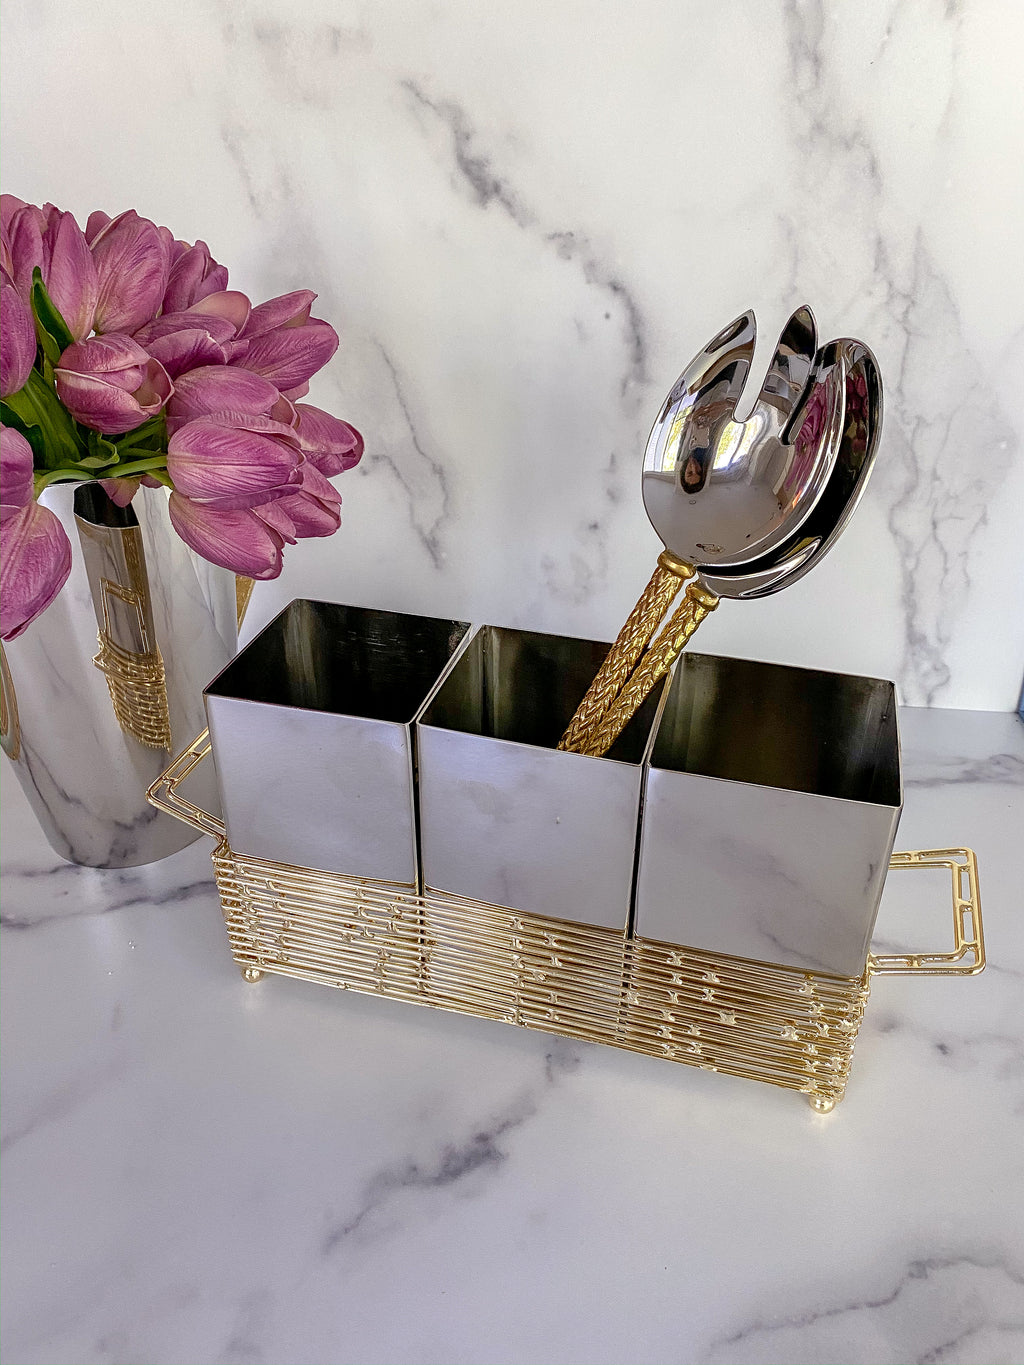 Silver and Gold Metal 3 Section Silverware Holder-Inspire Me! Home Decor